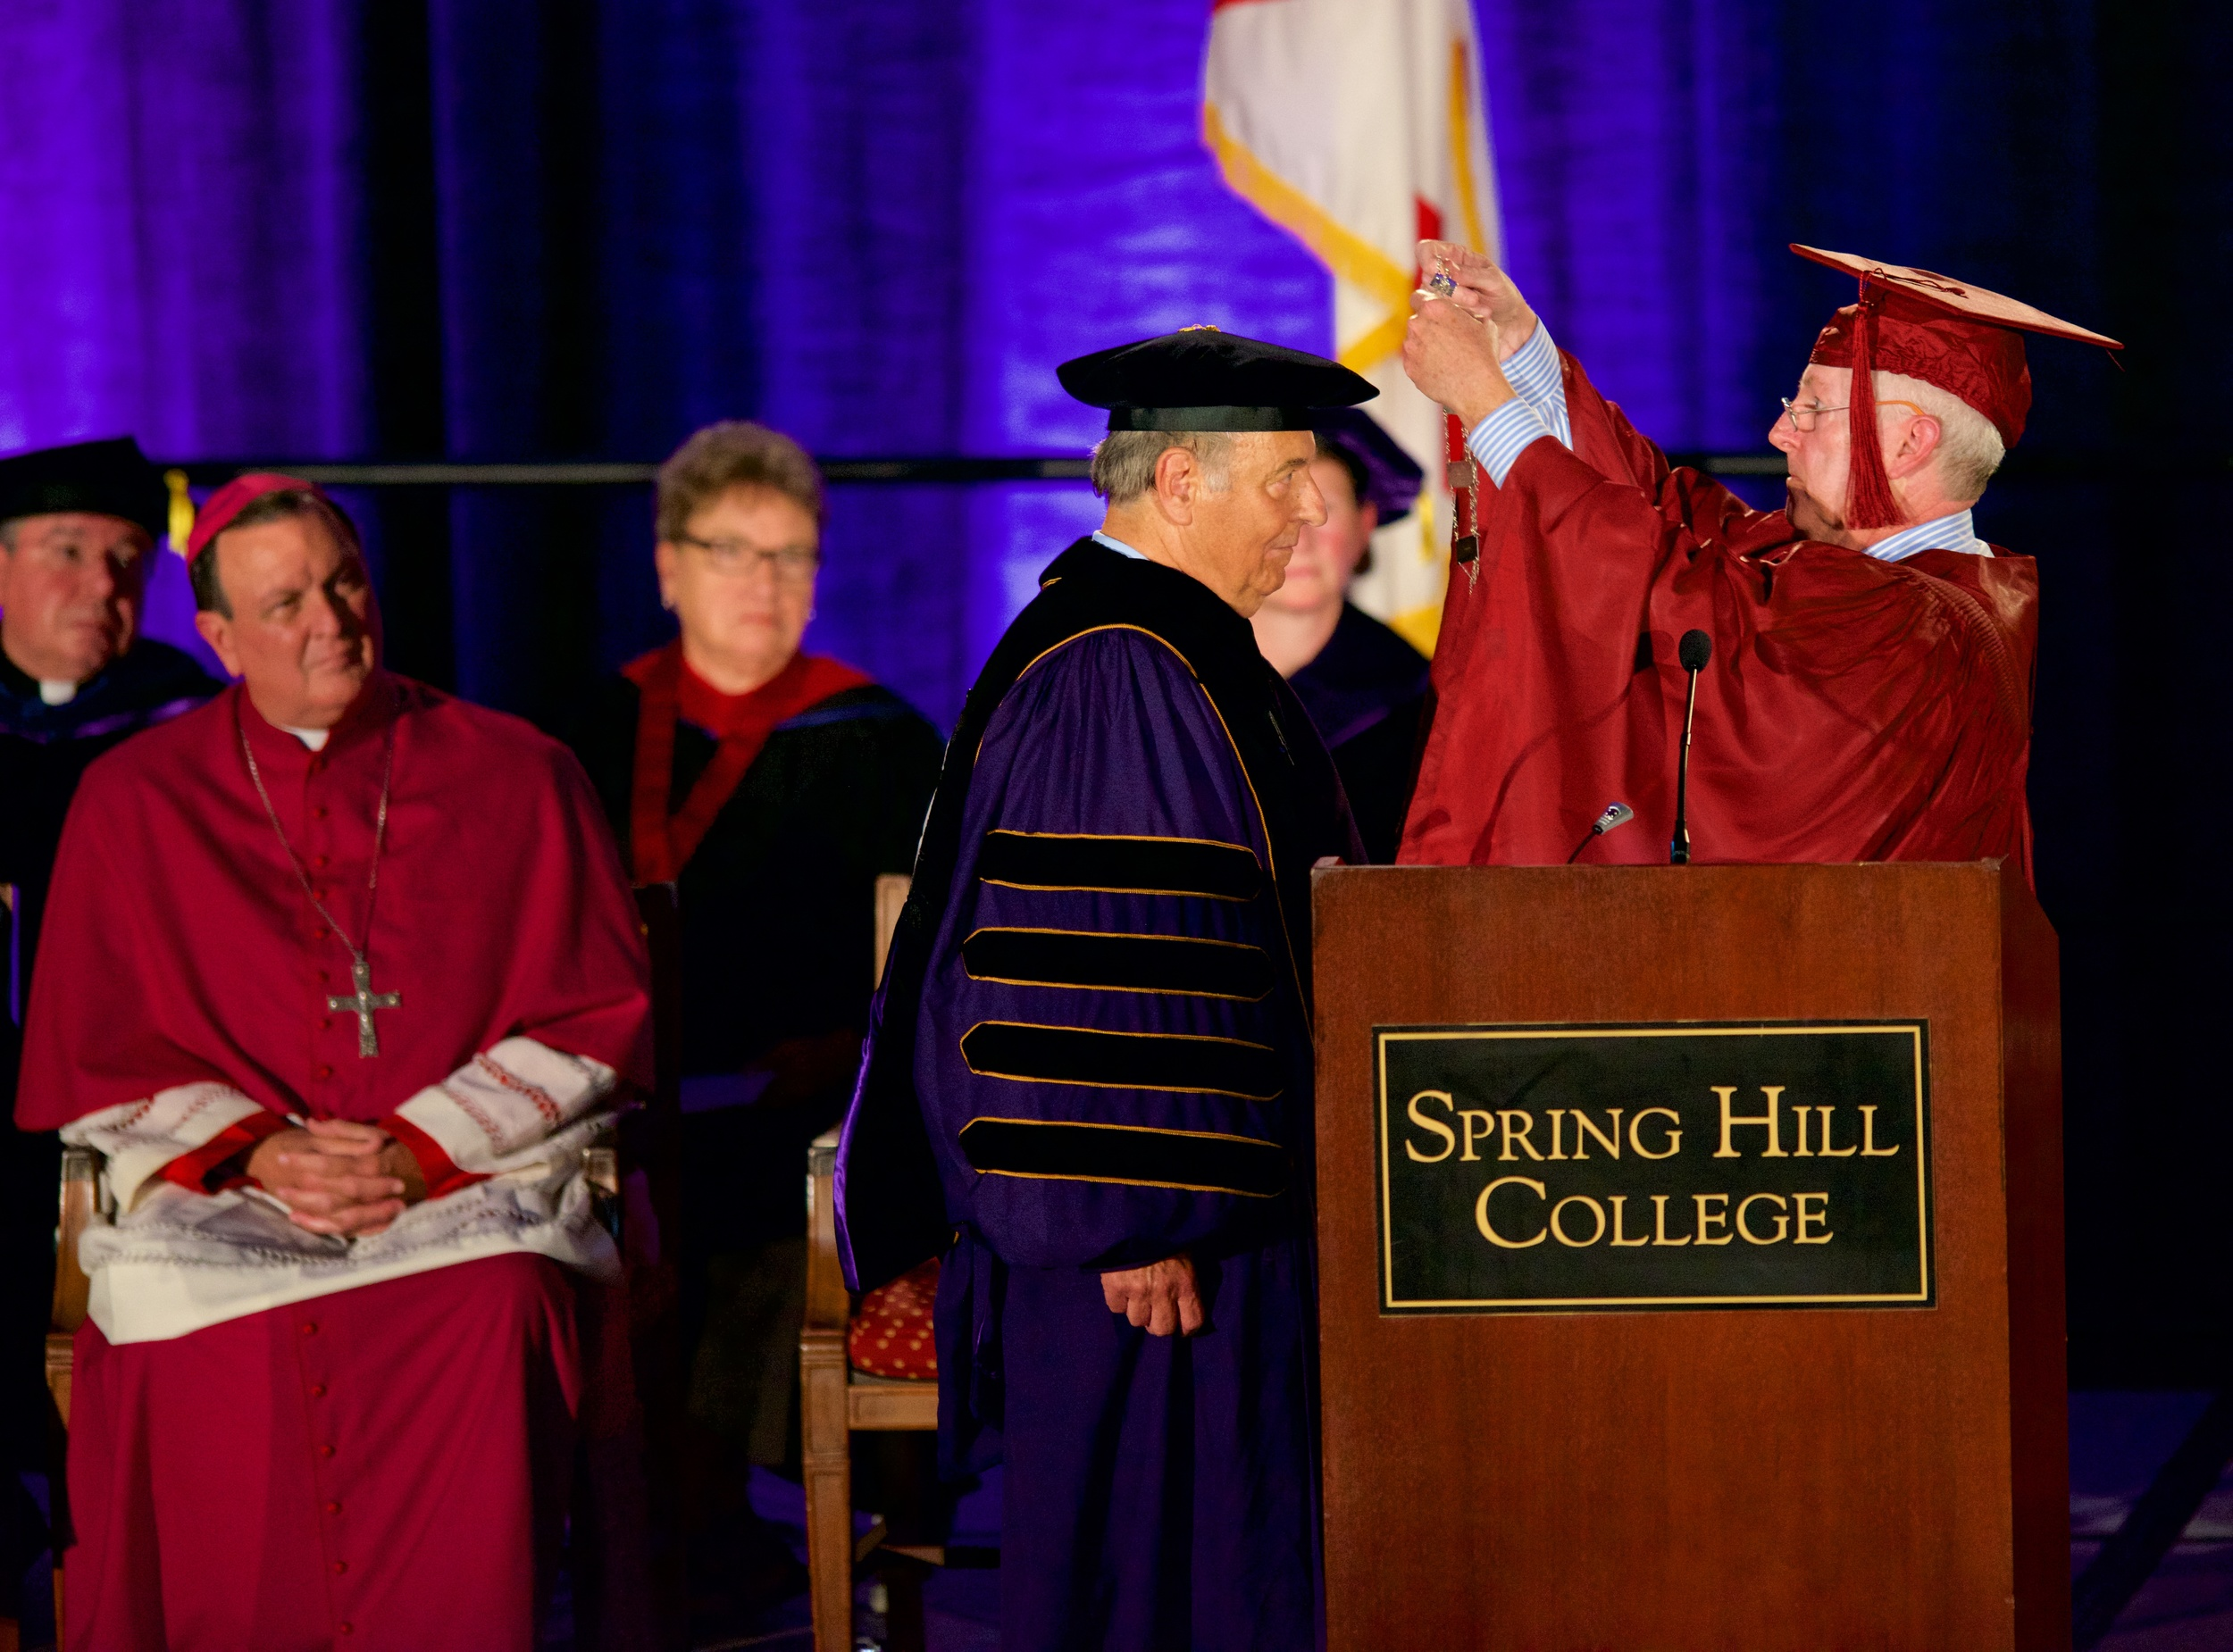 Chairman of the Spring Hill College Board Michael Coghlan presents Dr. Puto with the SHC presidential medallion. Photo by Spring Hill College.